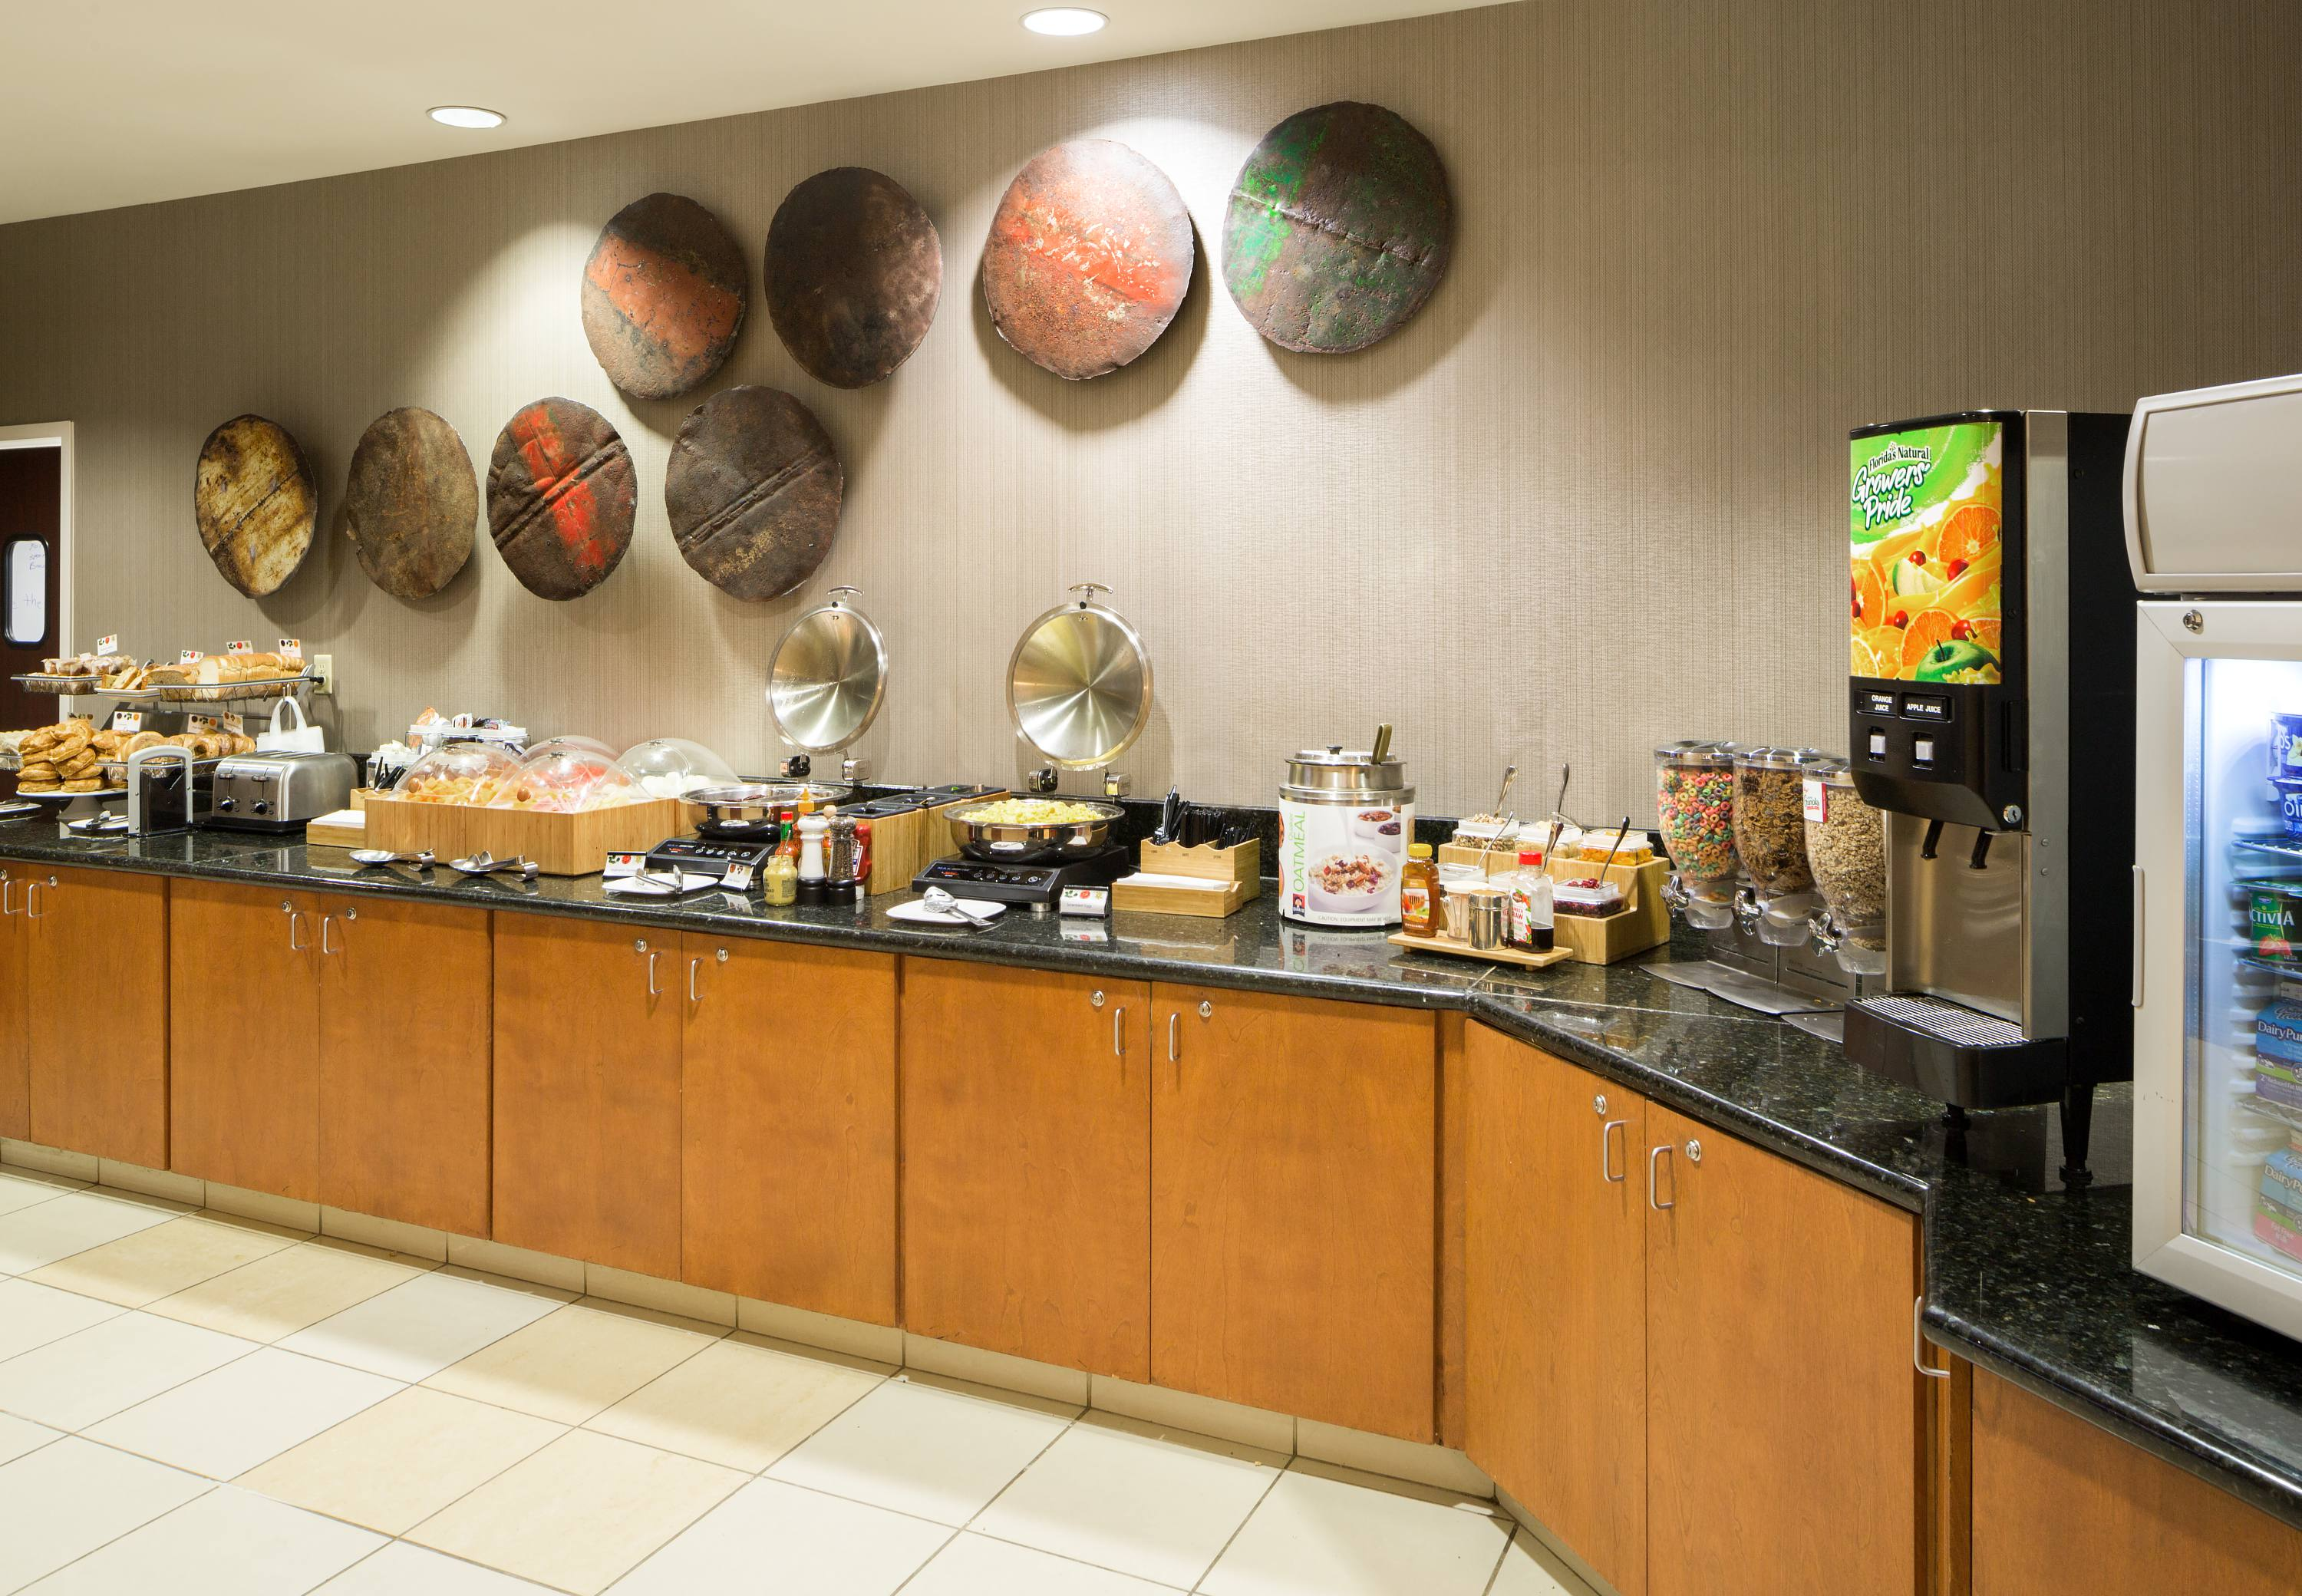 SpringHill Suites by Marriott Indianapolis Fishers image 26